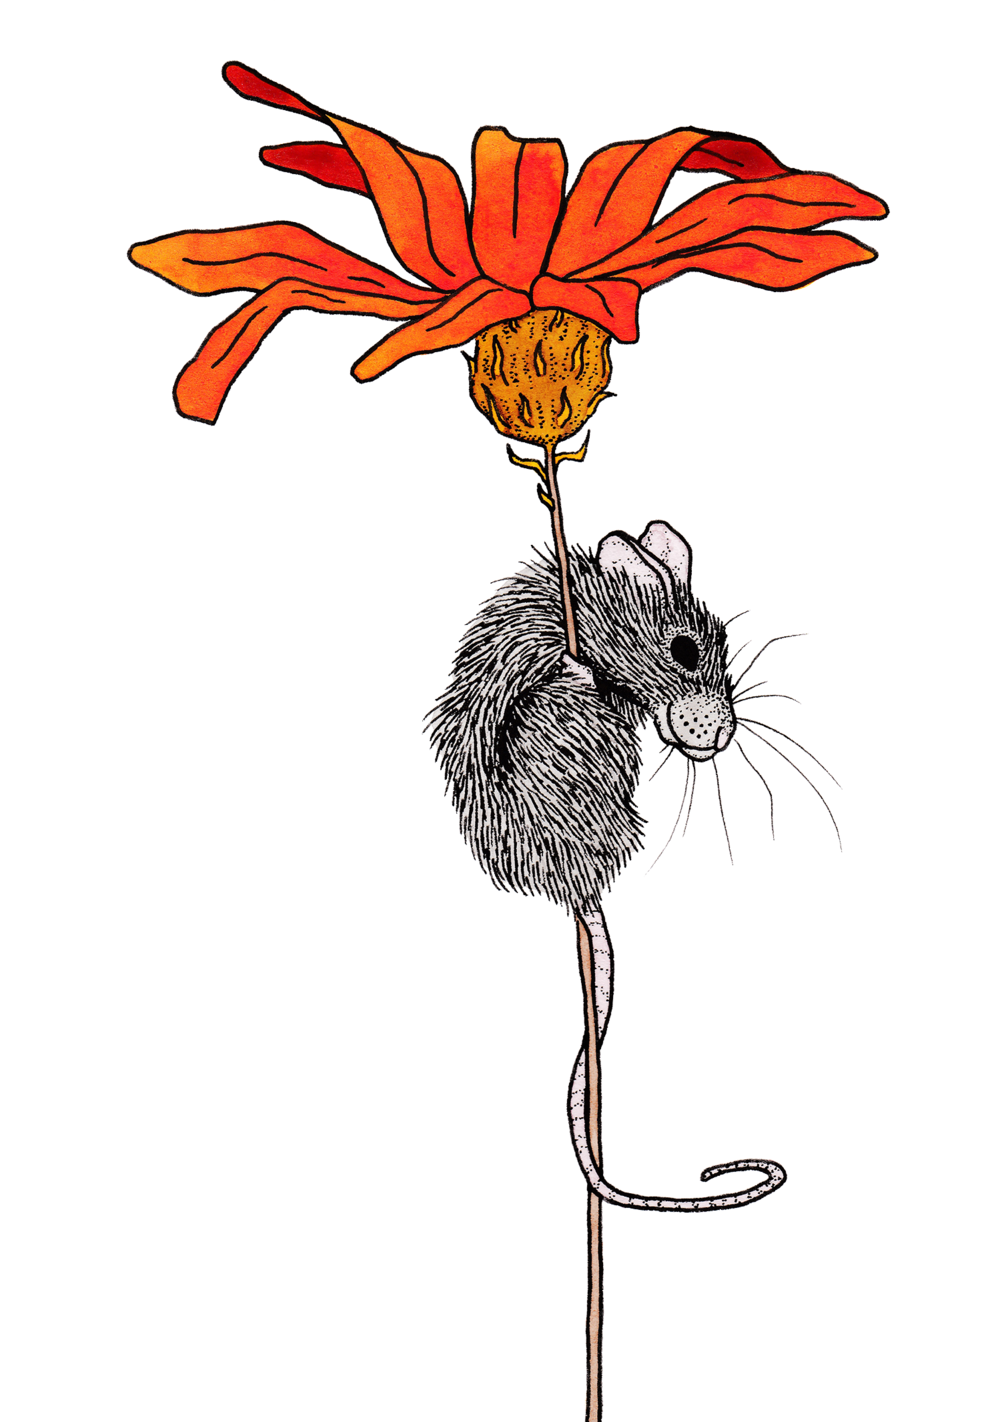 Mouse + Flower